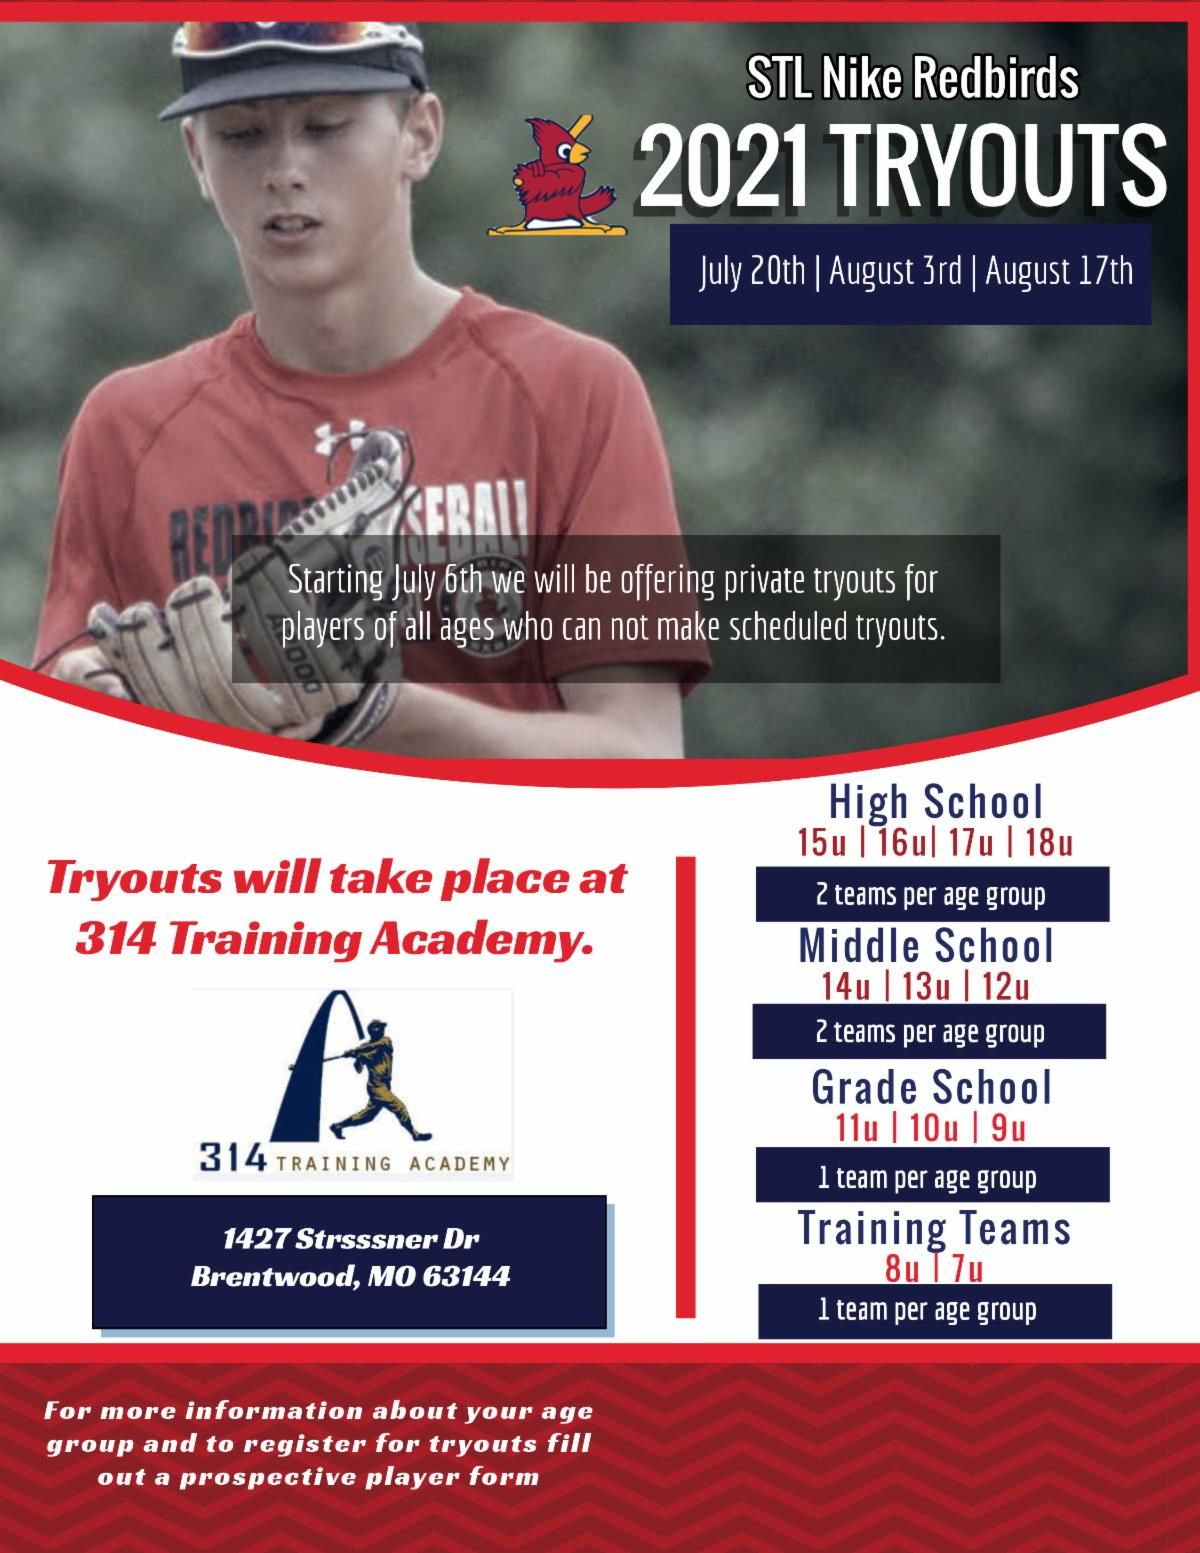 Stl Nike Redbirds 2021 Tryouts In 2020 Players How To Make St Louis